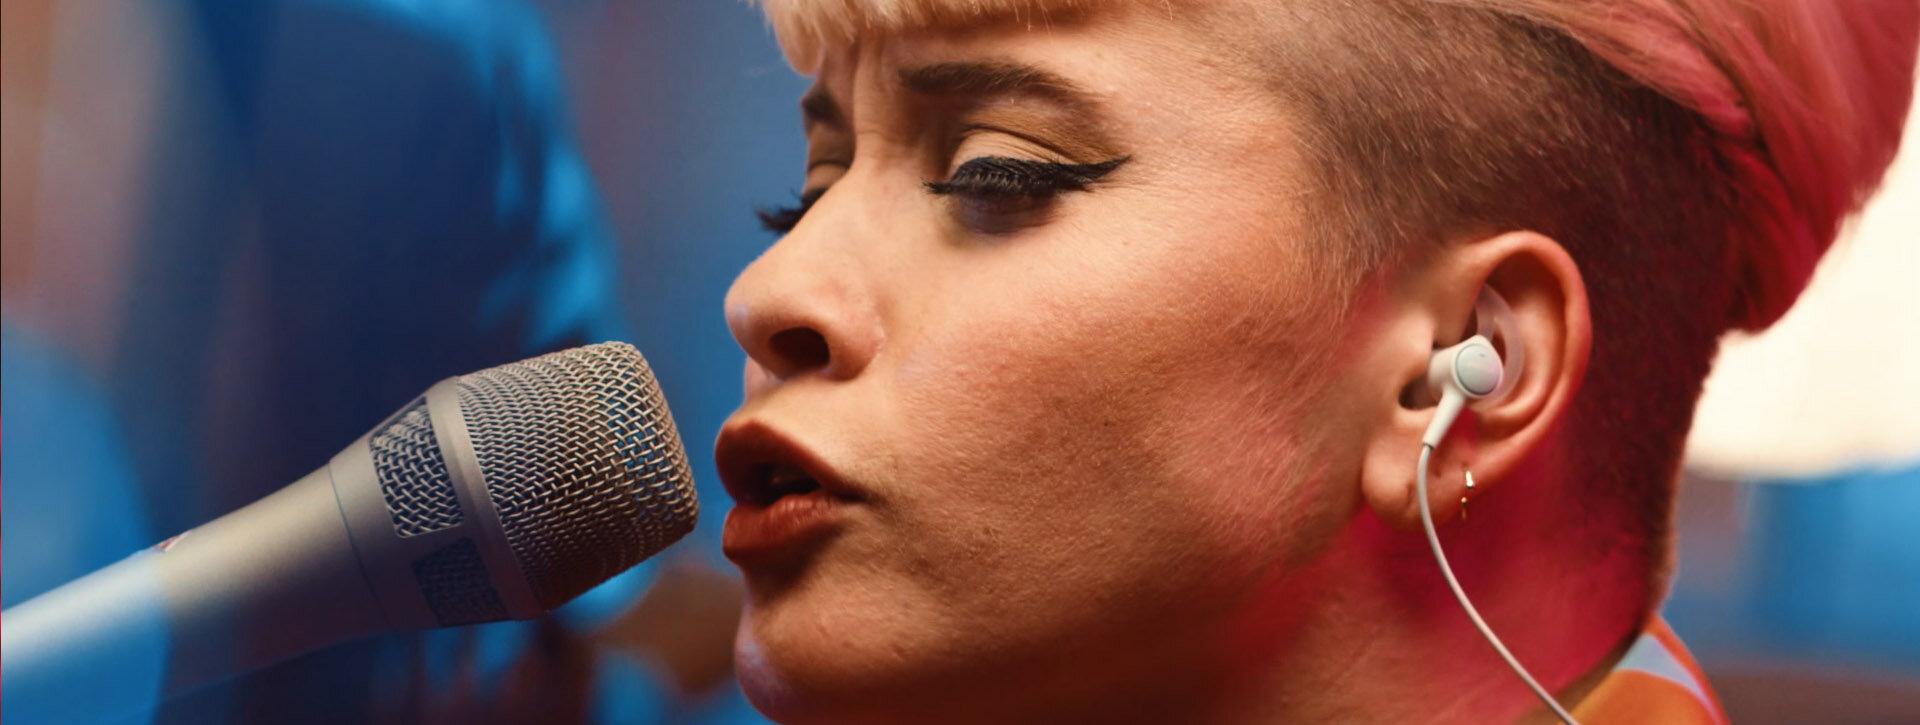 Lucius | better sound session